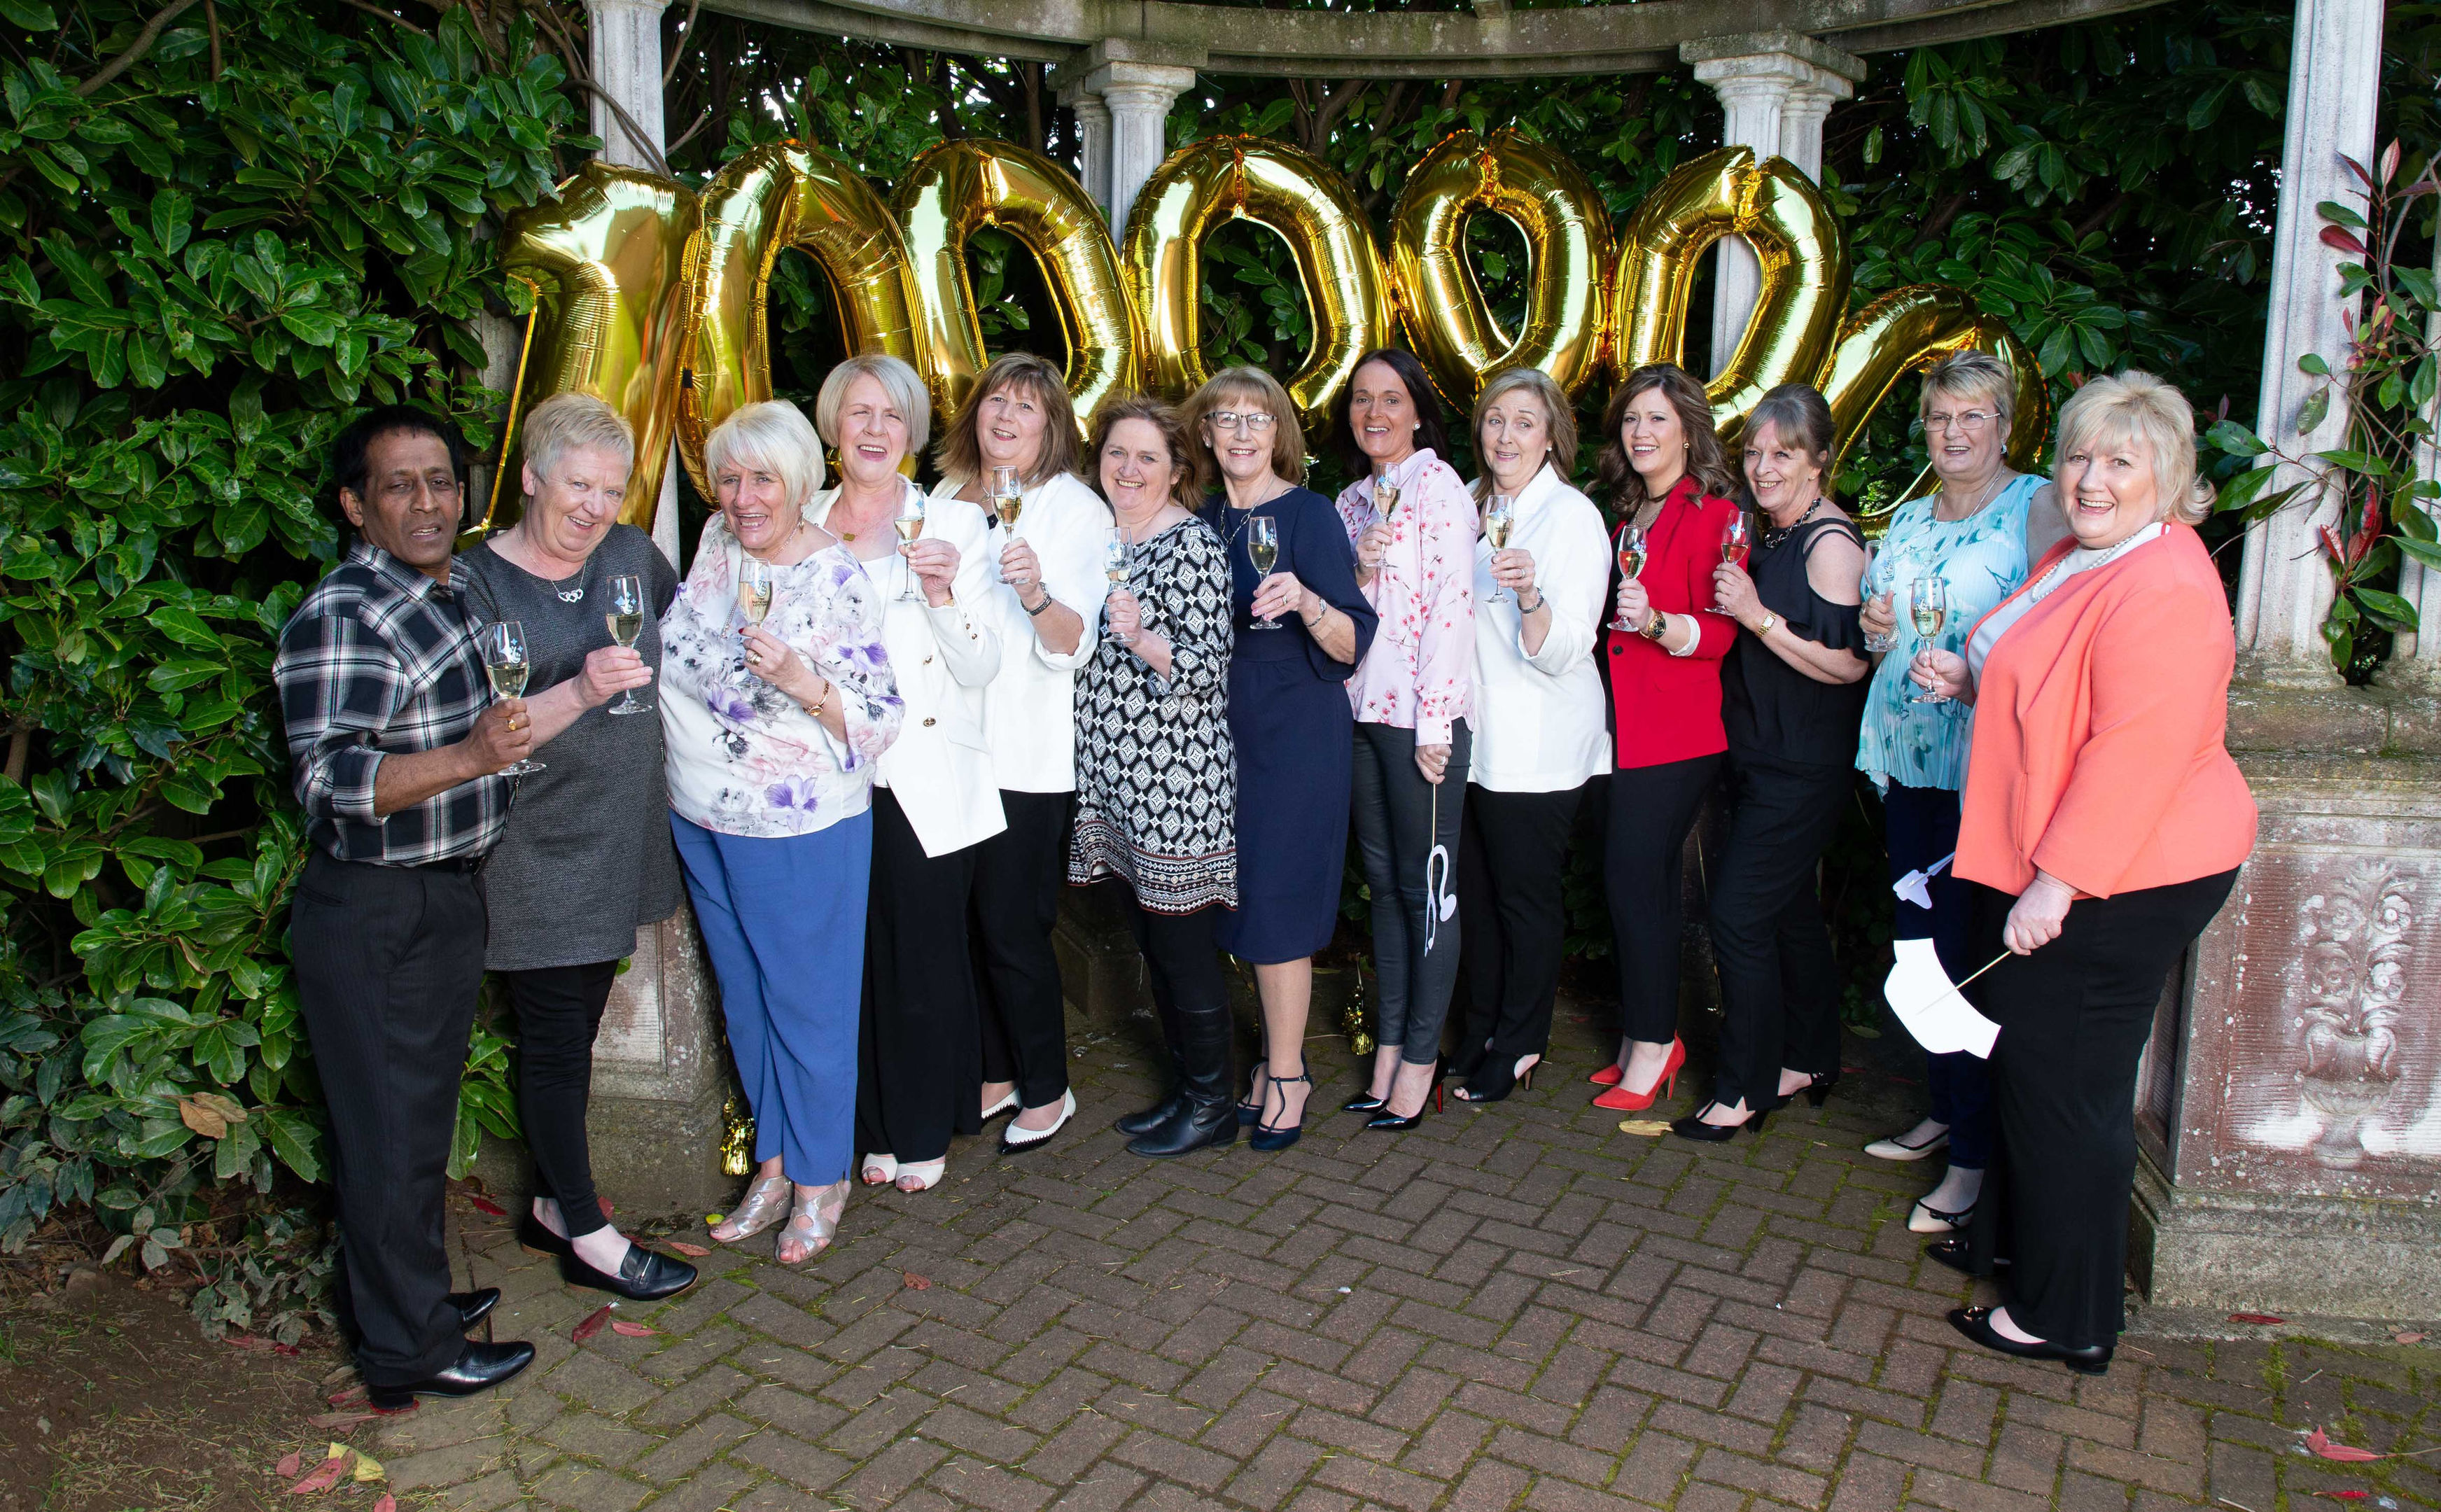 The winning group of 15 nurses from Cleland Hospital in Motherwell, North Lanarkshire (Camelot / PA Wire)